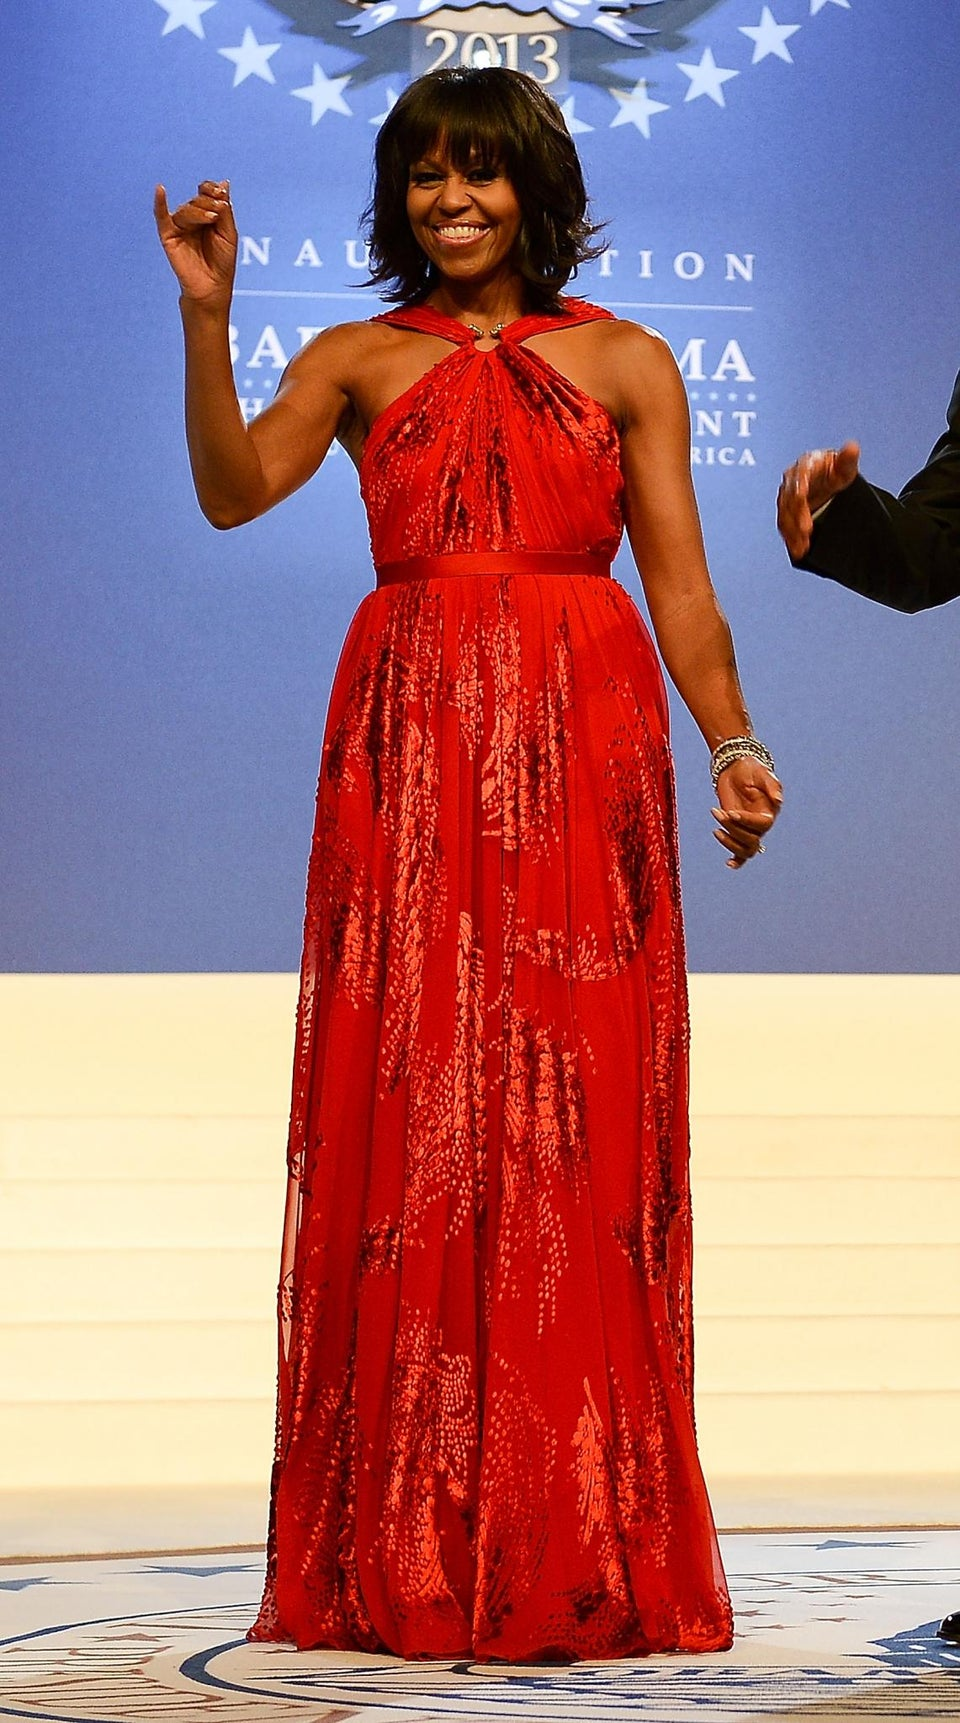 Michelle Obama Names What's On Her Playlist